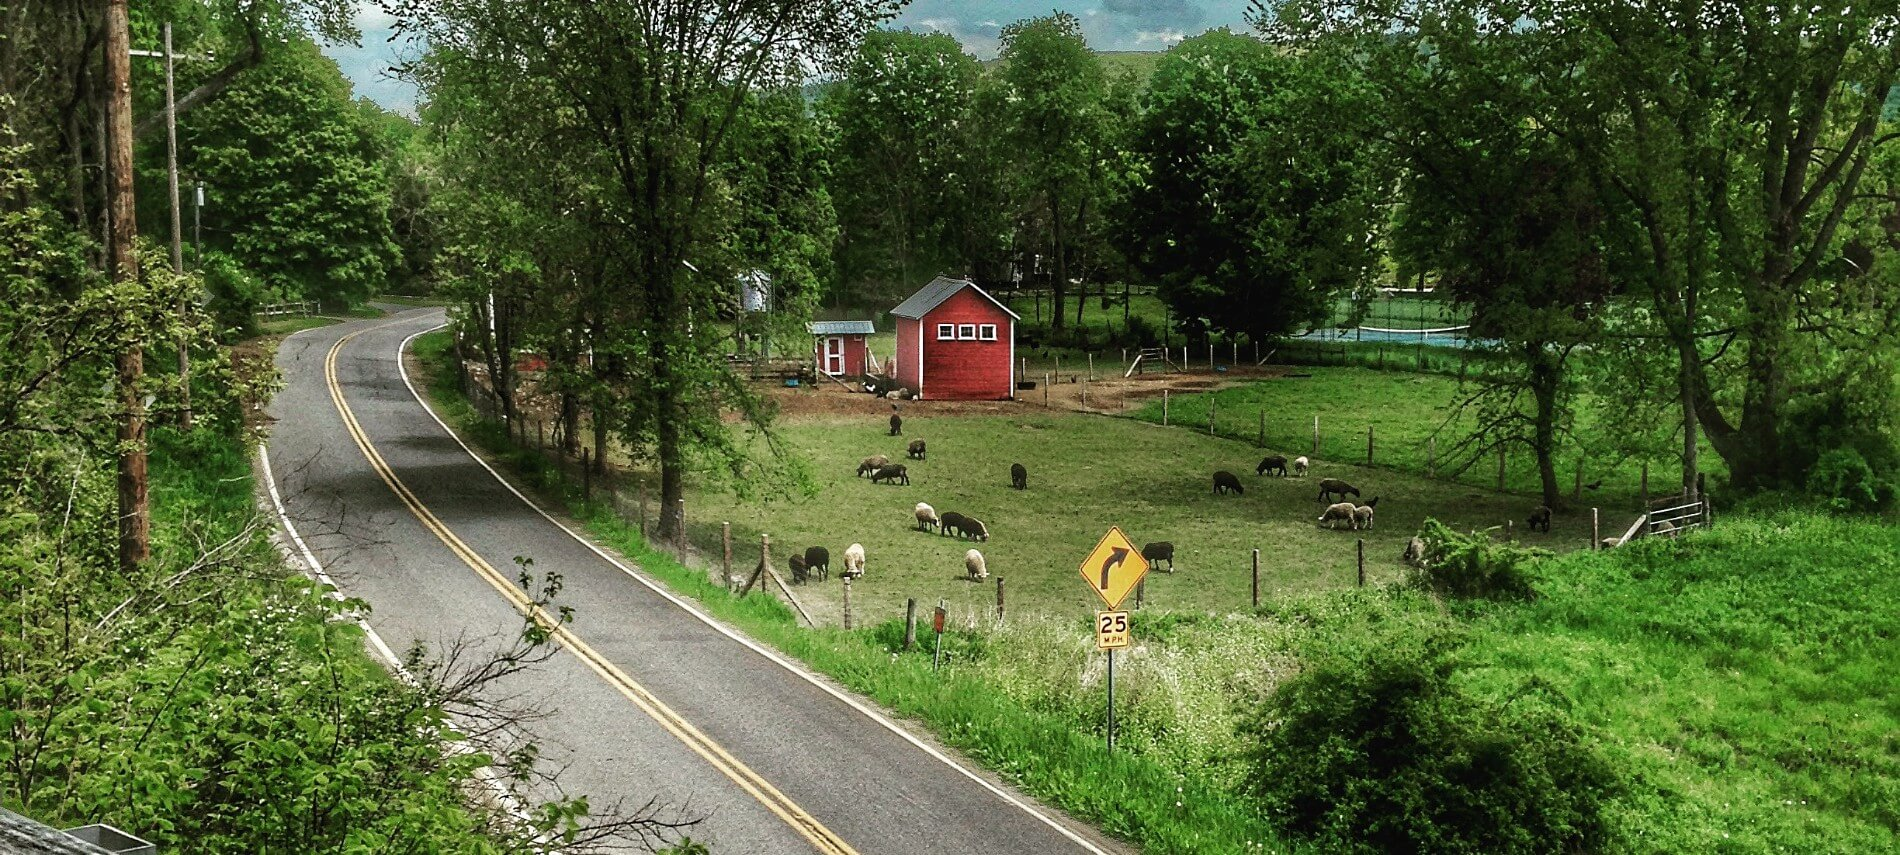 Empty country road next to a farm with a red barn and animals grazing in a pasture